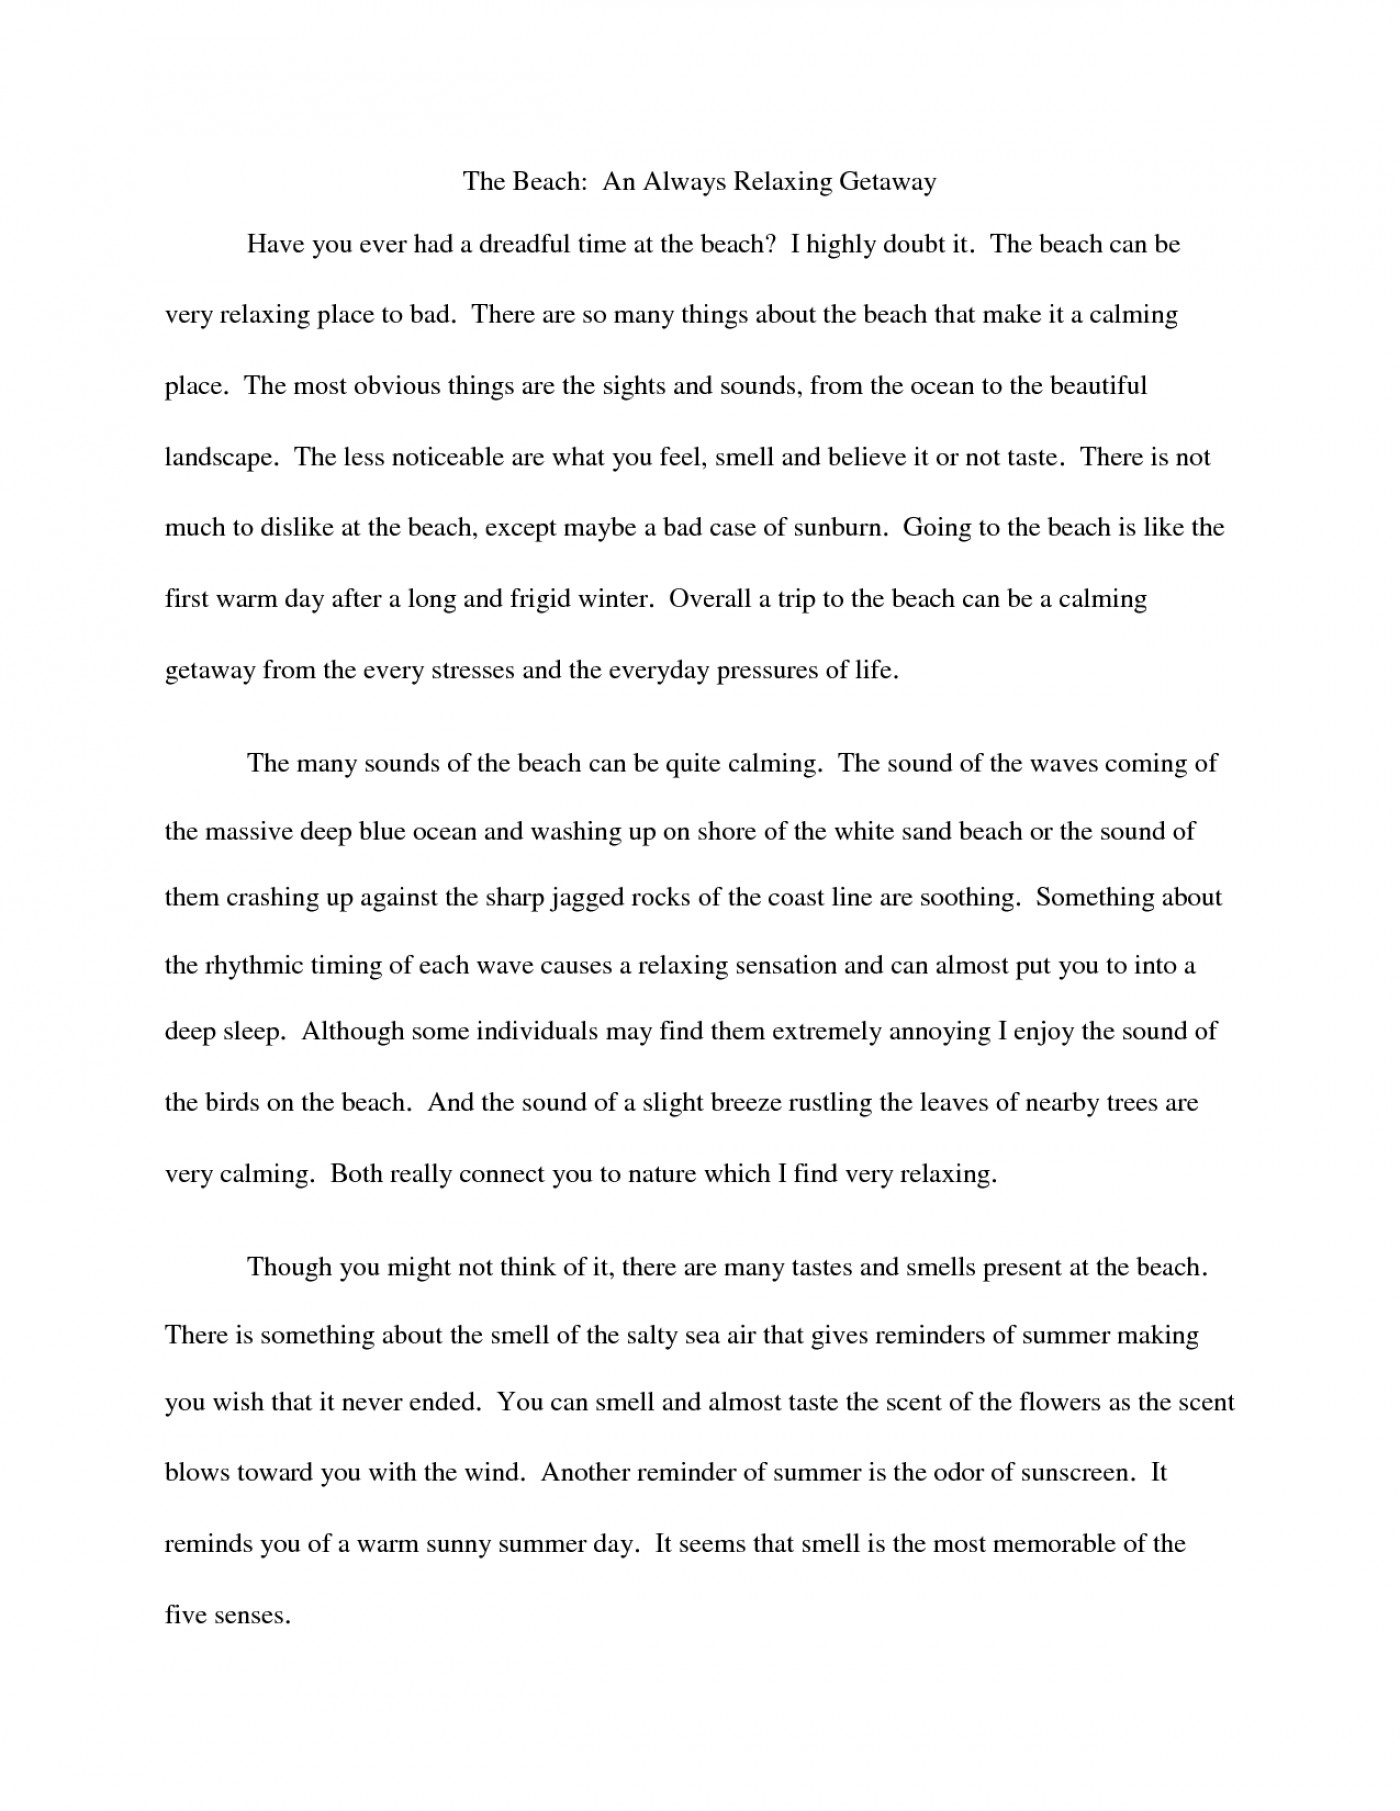 006 Essay Example Descriptive Beach Essays College That Stand Out Odvqltnc Short On The Sunset Paper Barefoot About Walk Vacation Narrative At Night Free Unbelievable Examples For Middle School Students Sample A Place Pdf 1400